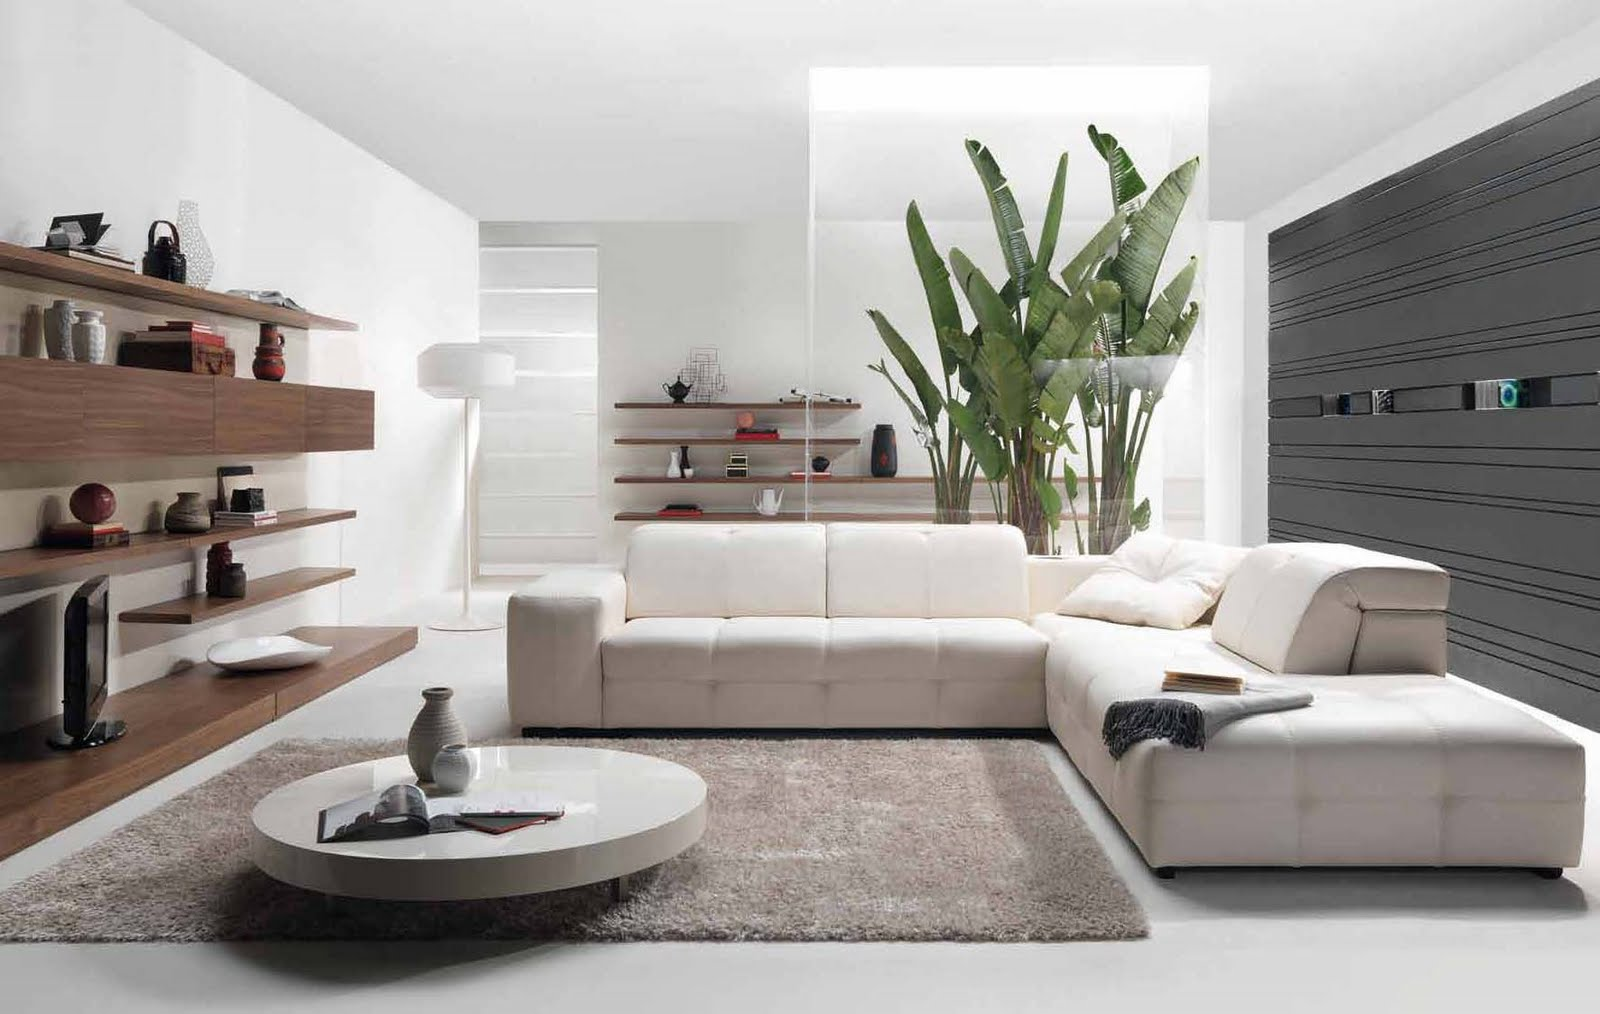 Modern home interior furniture designs diy ideas for Interior design ideas living room small